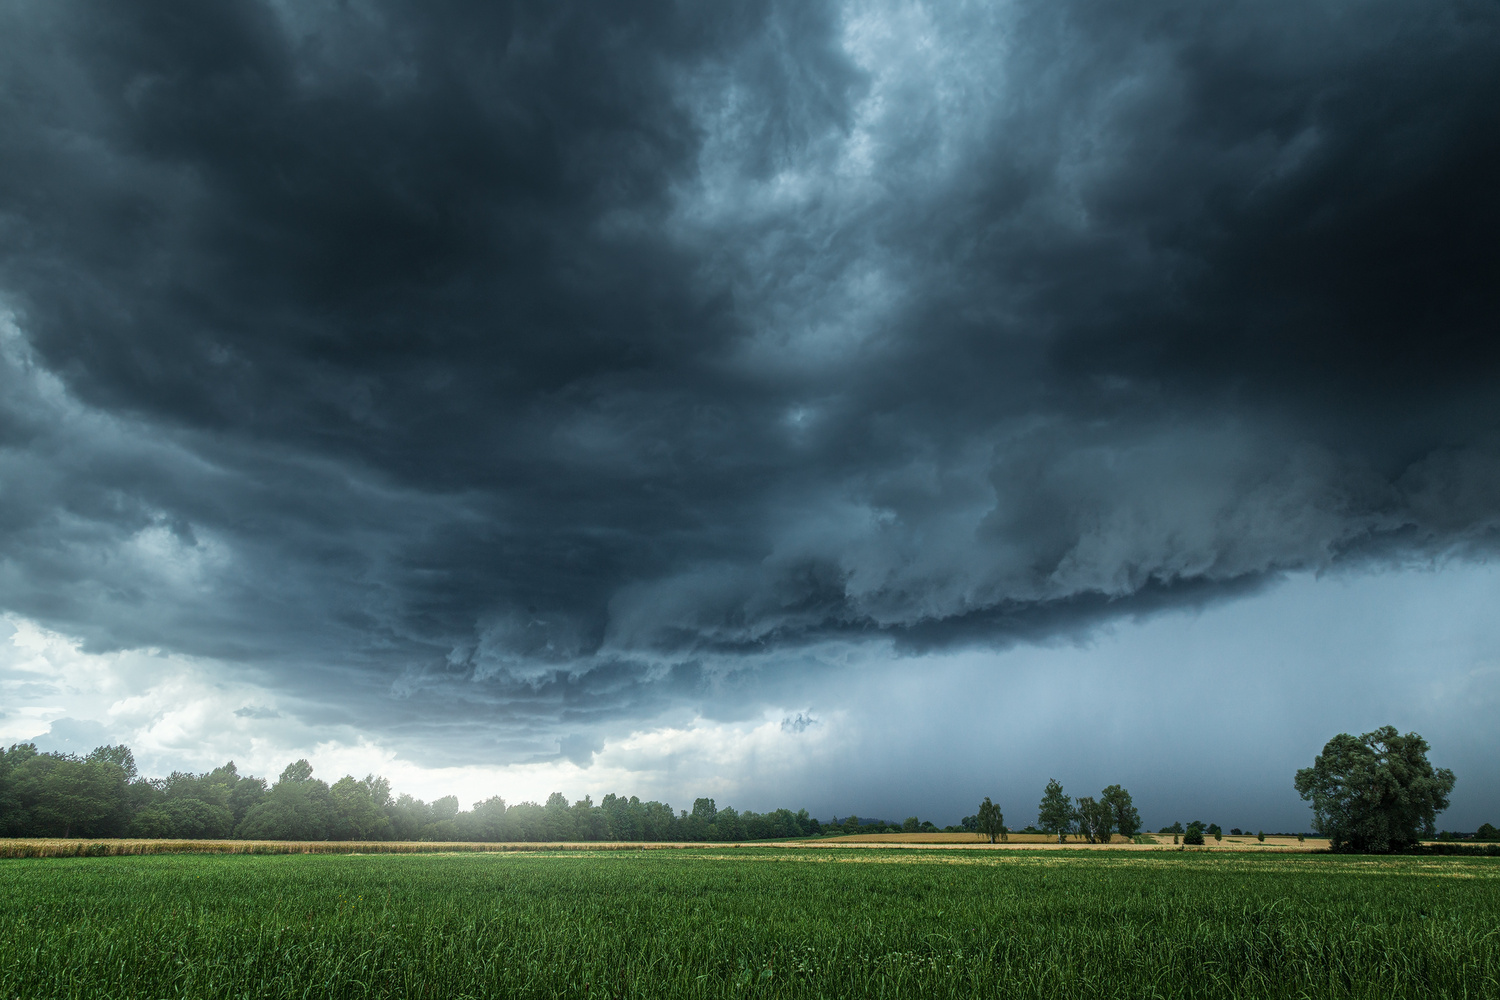 Thunderstorm approaching by Christian Möhrle